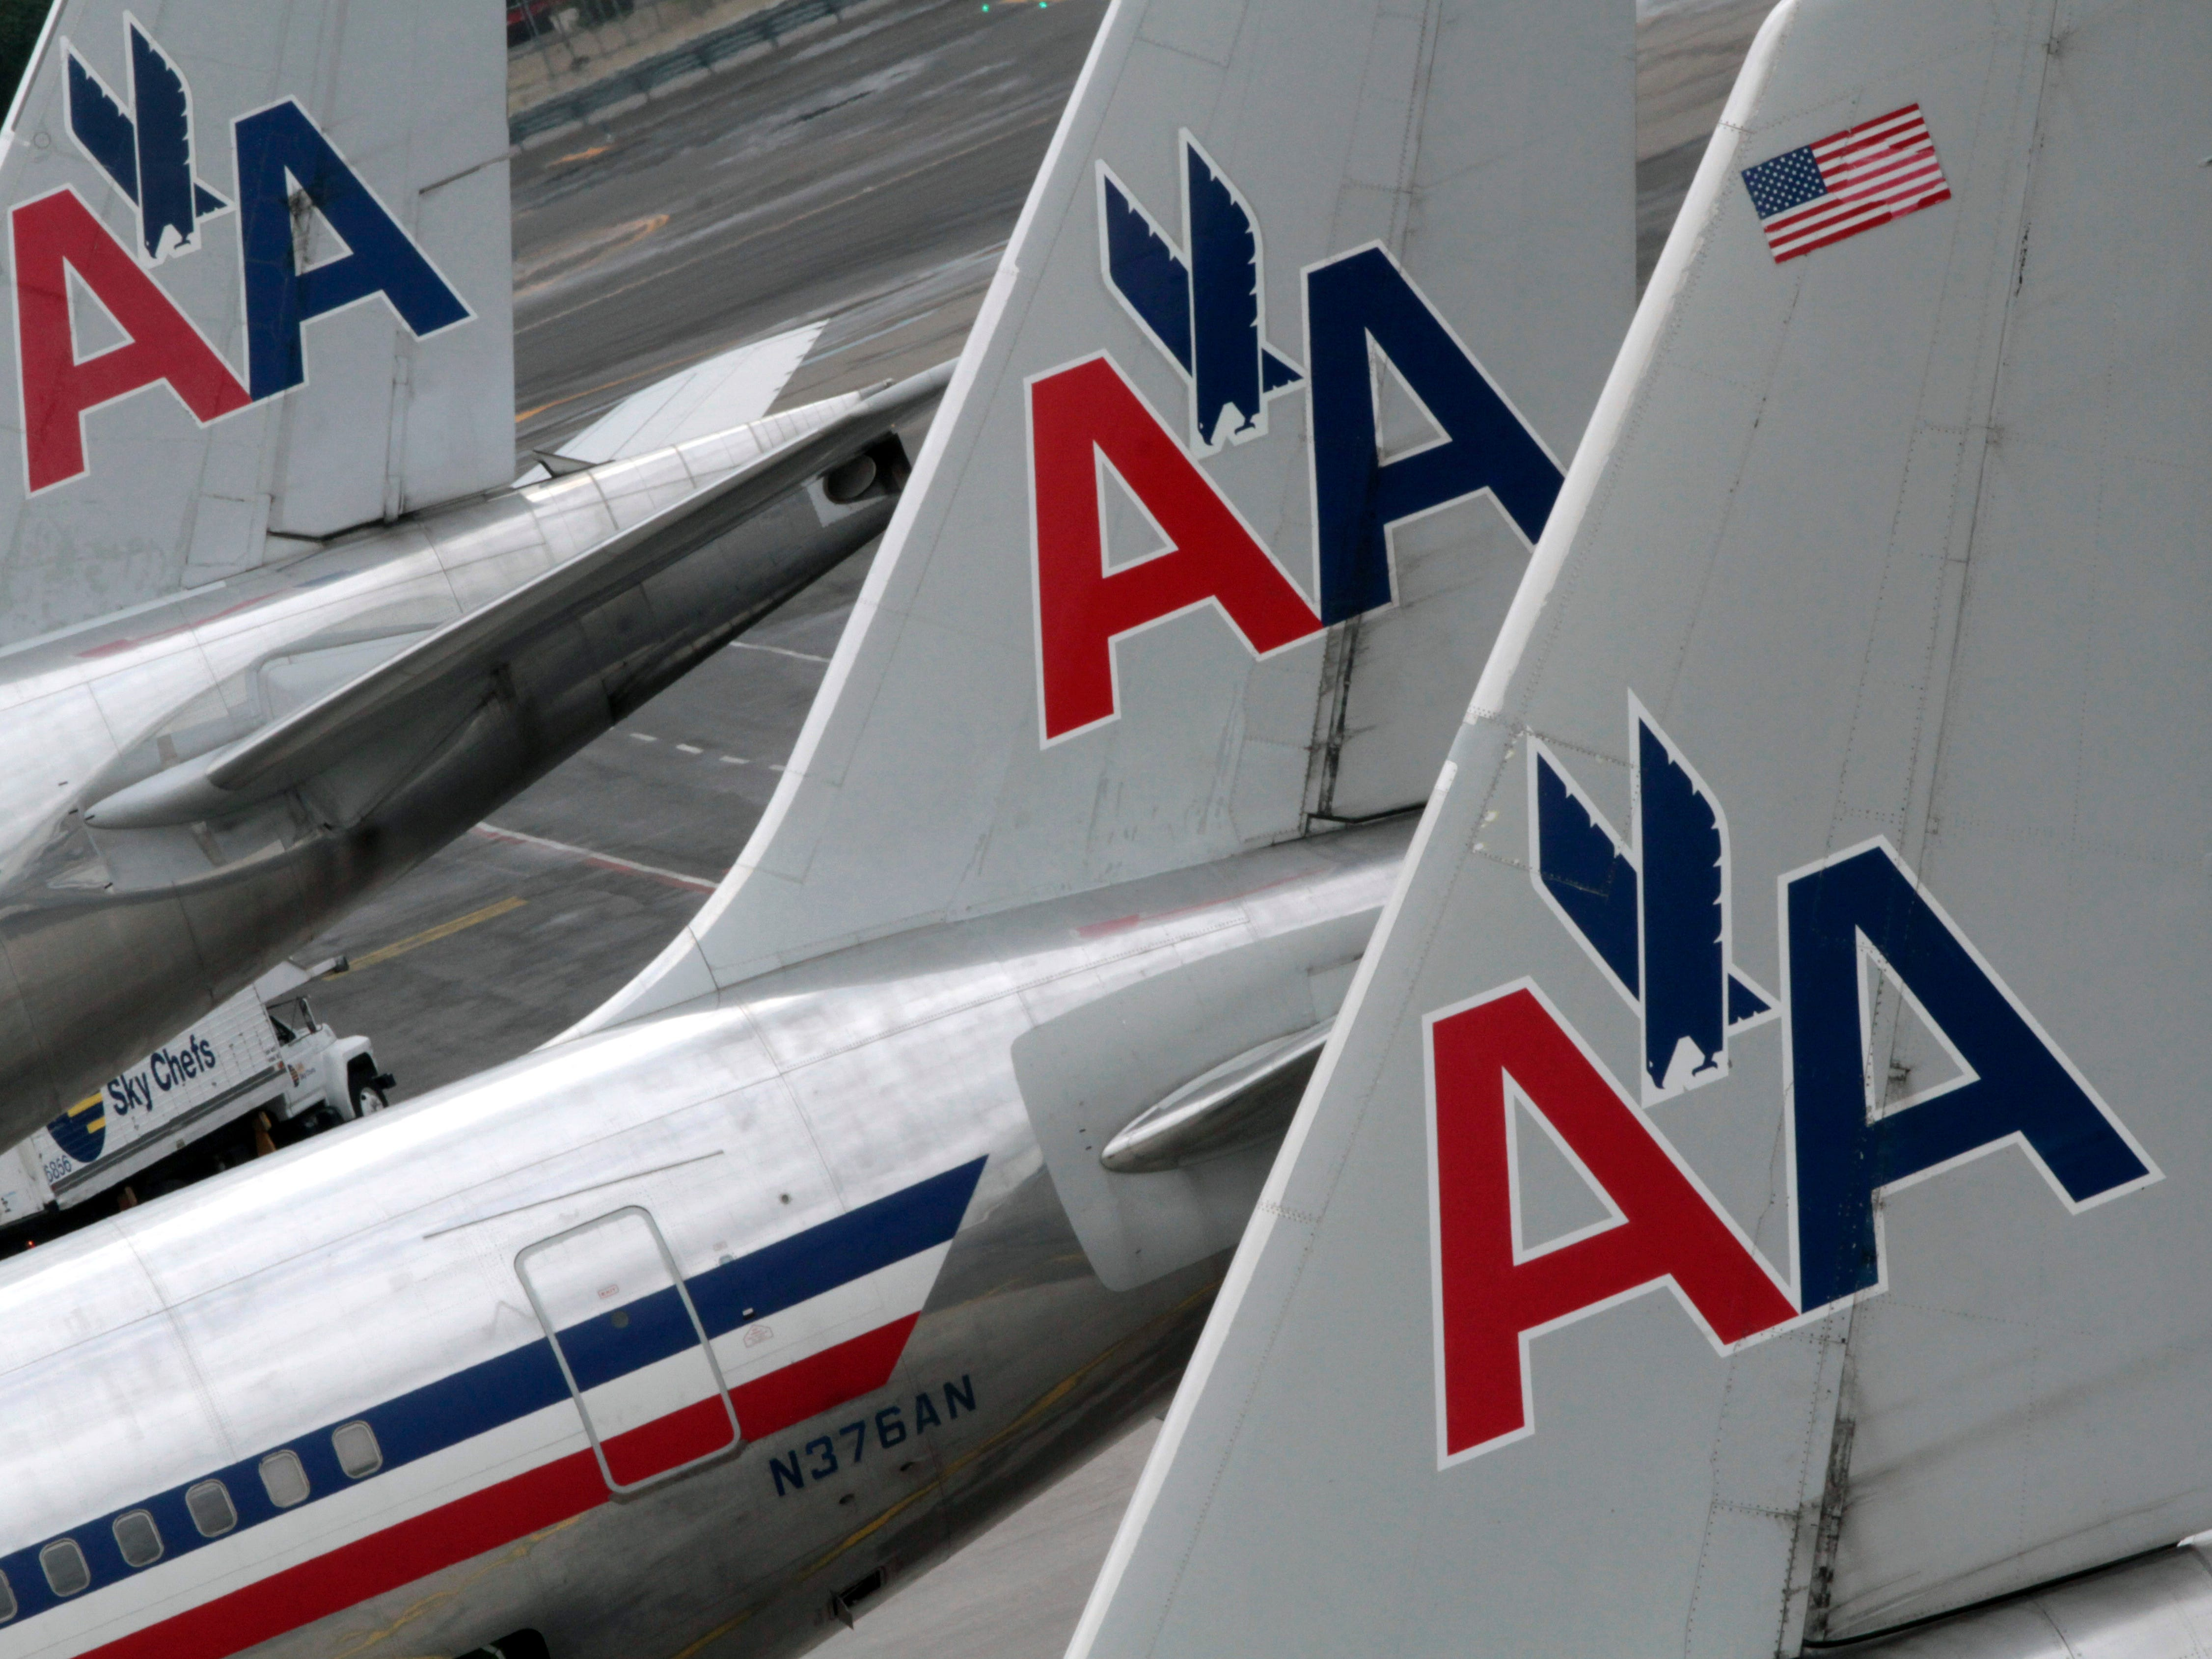 Brawl between American Airlines flight attendants results in lawsuit against carrier